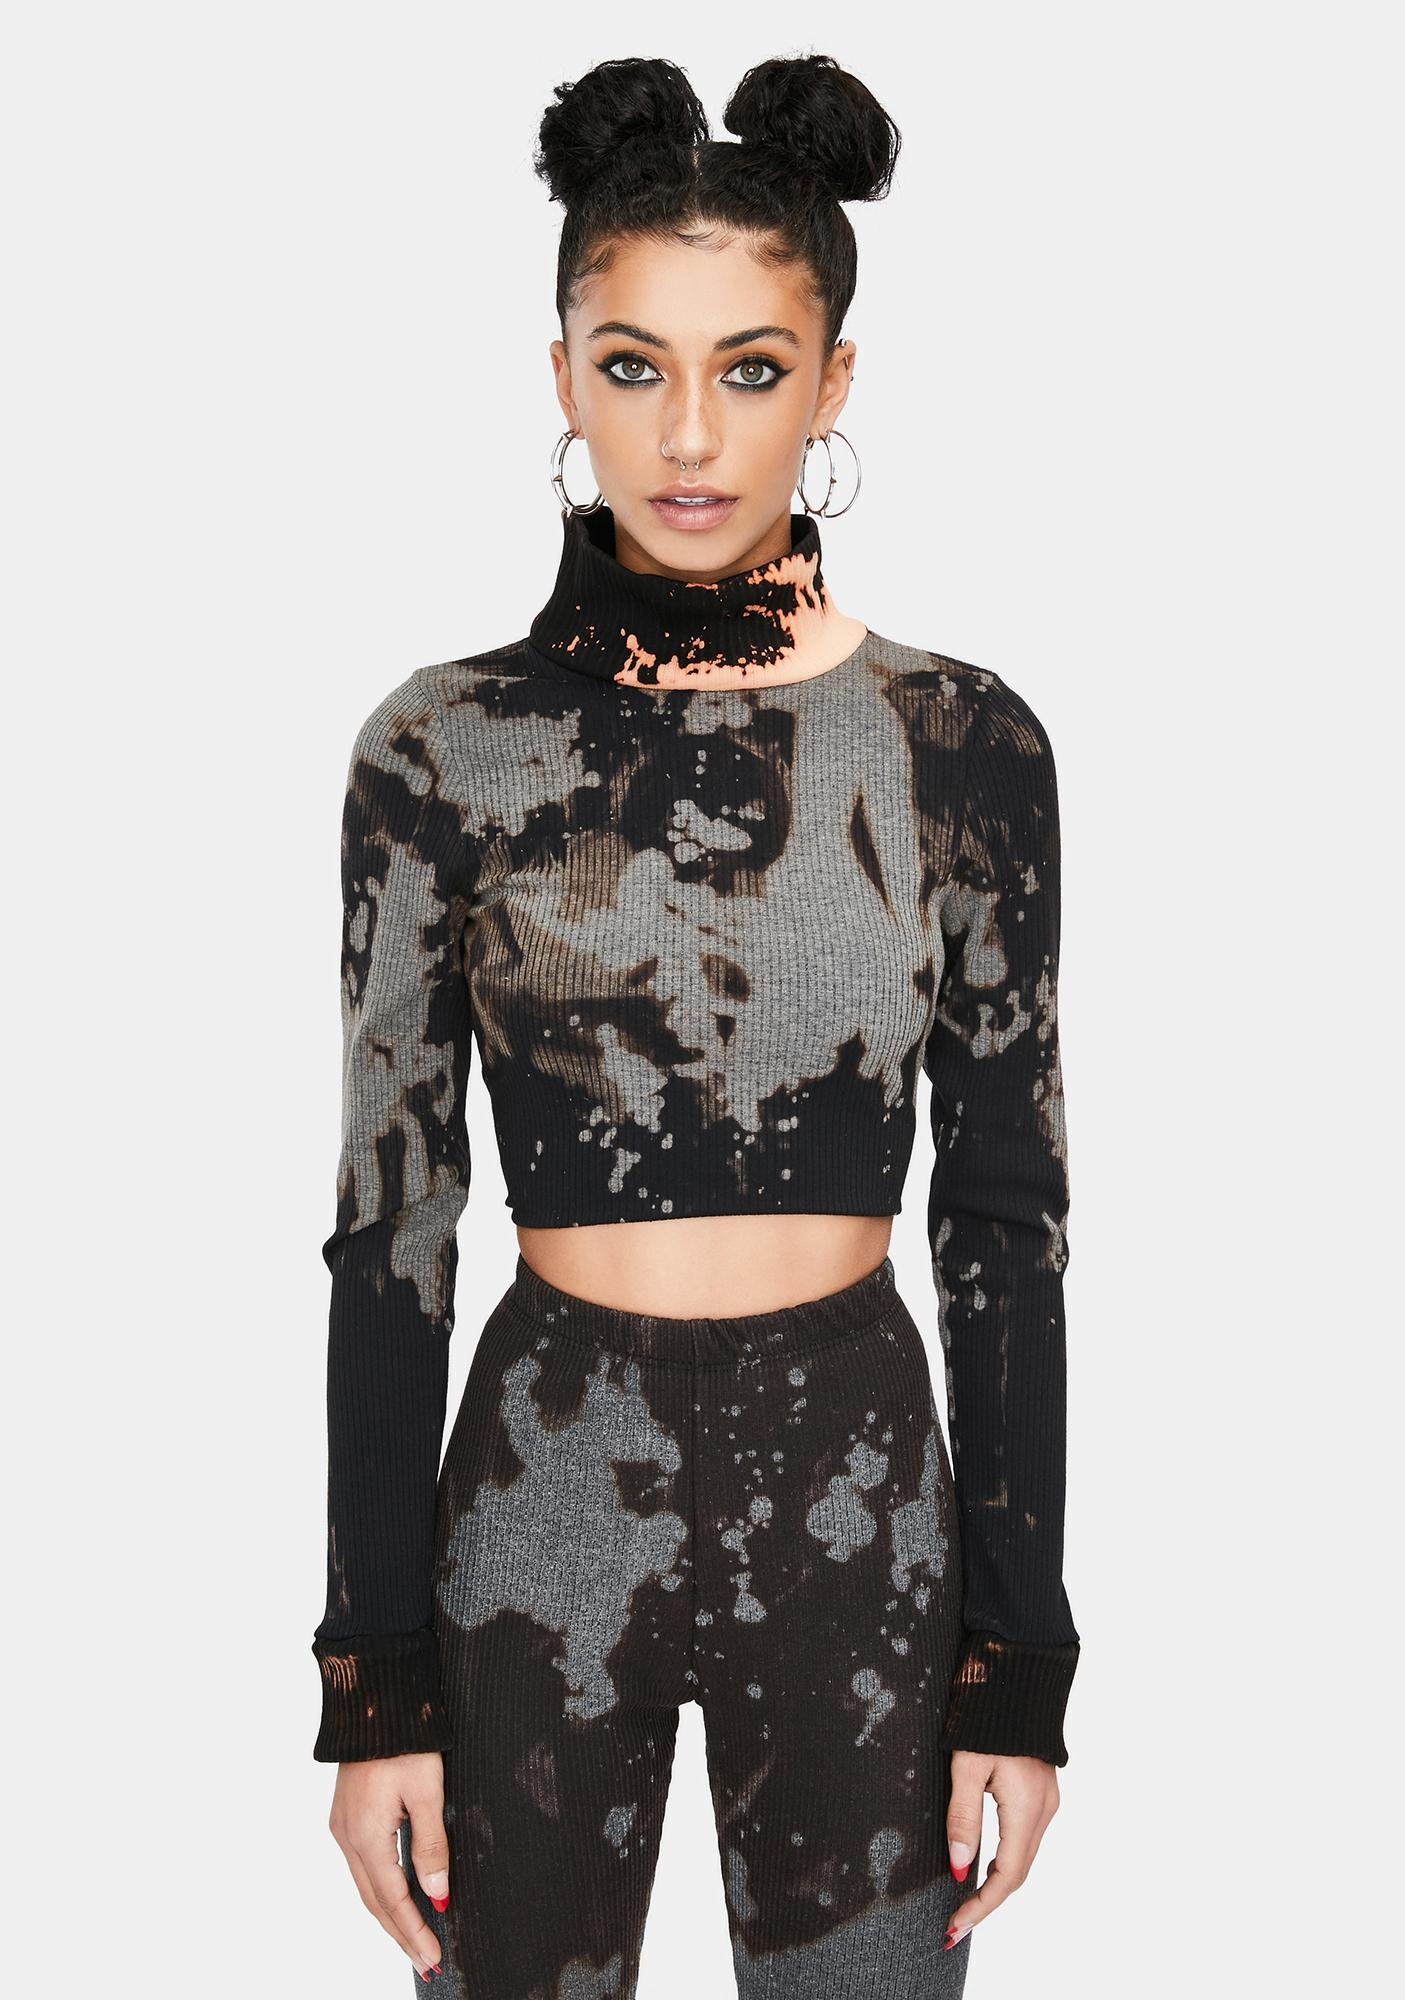 Ivy Berlin Burned Up Tie Dye Crop Top